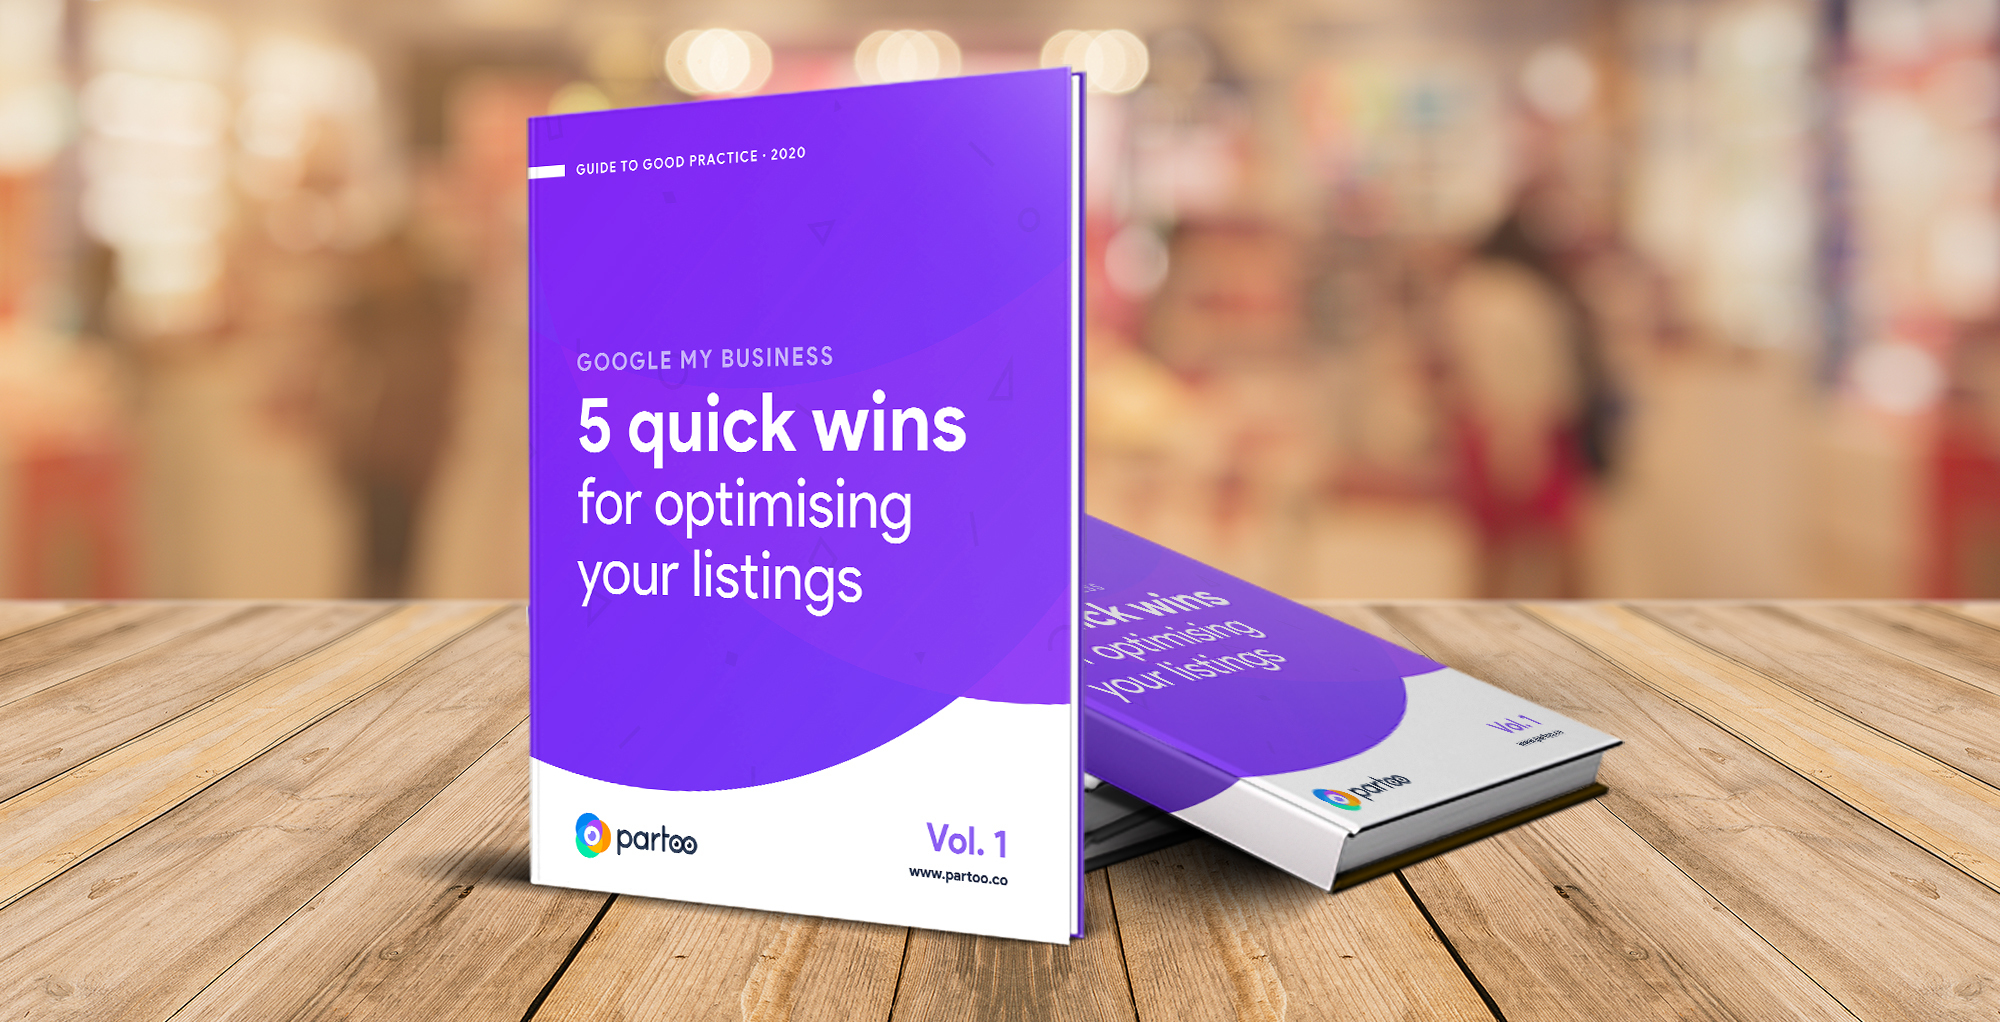 Optimising your listings on Google My Business